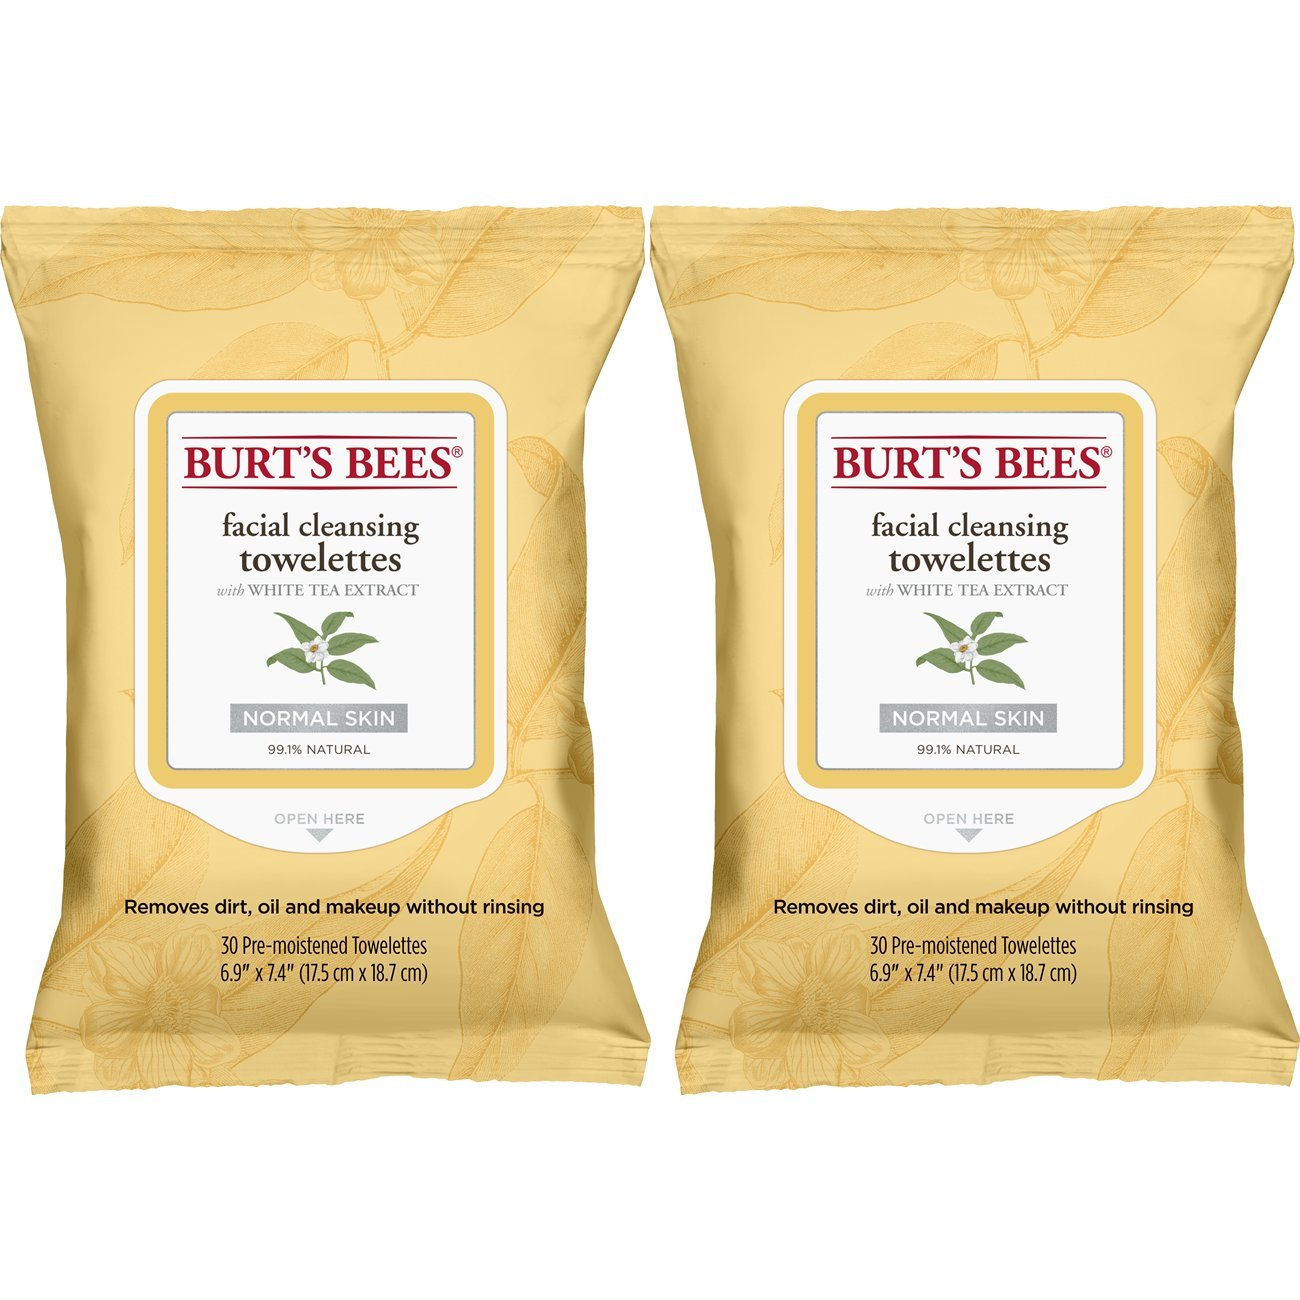 Burt's Bees Facial Cleansing Towelettes White Tea Extract Burt' s Bees Inc. AB-71112